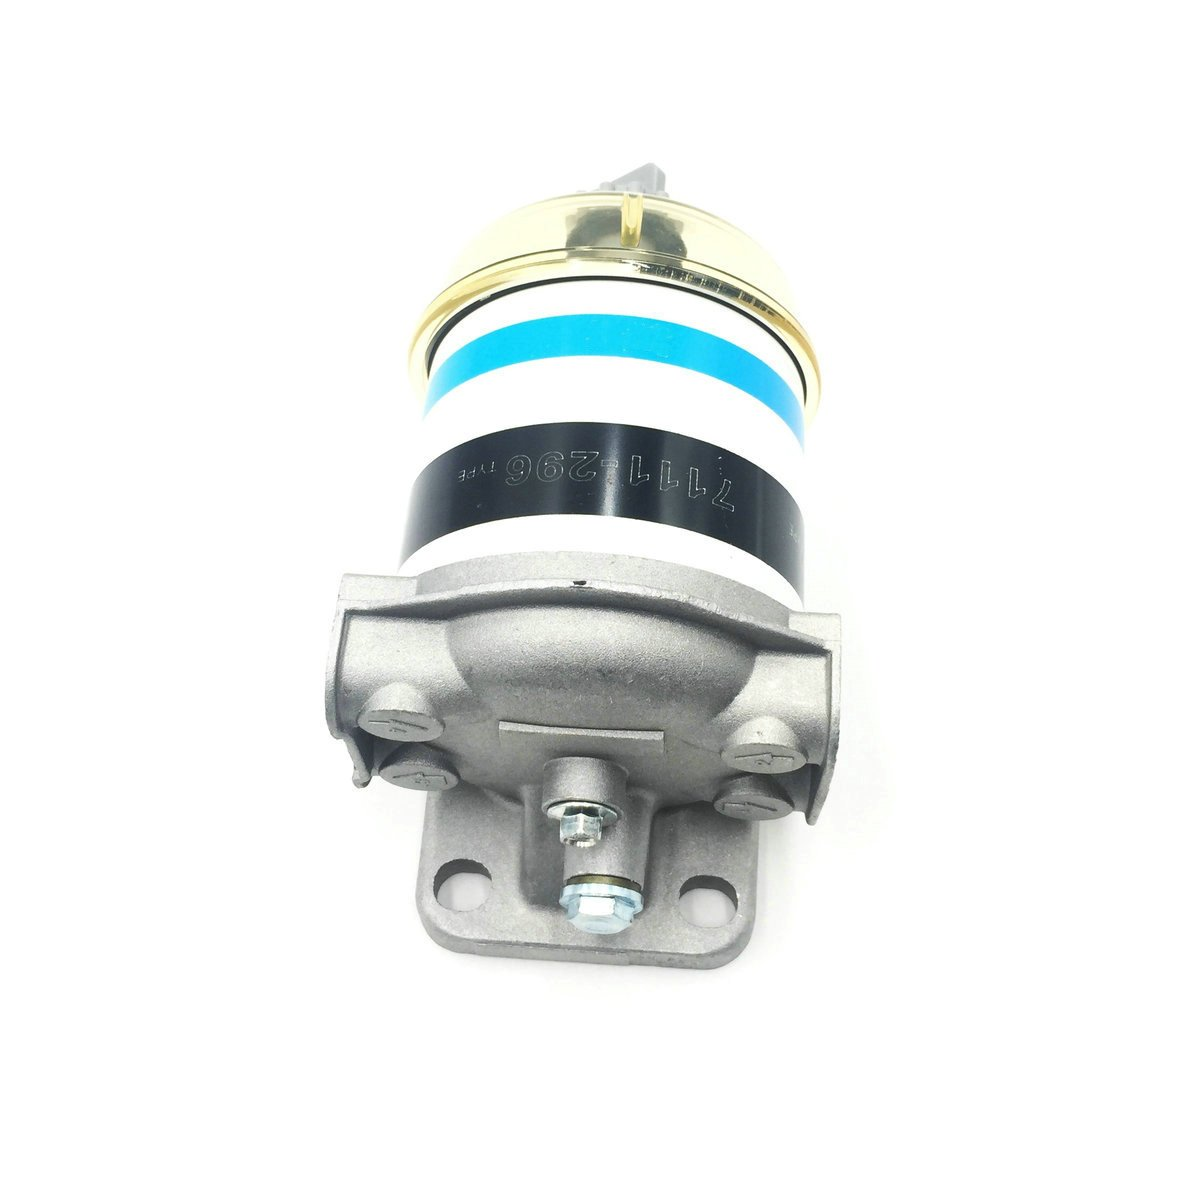 Replacement C5ne9165c D9nn9165ba Fuel Filter Assembly With Glass Ford Bowl For Cav Landini New Holland